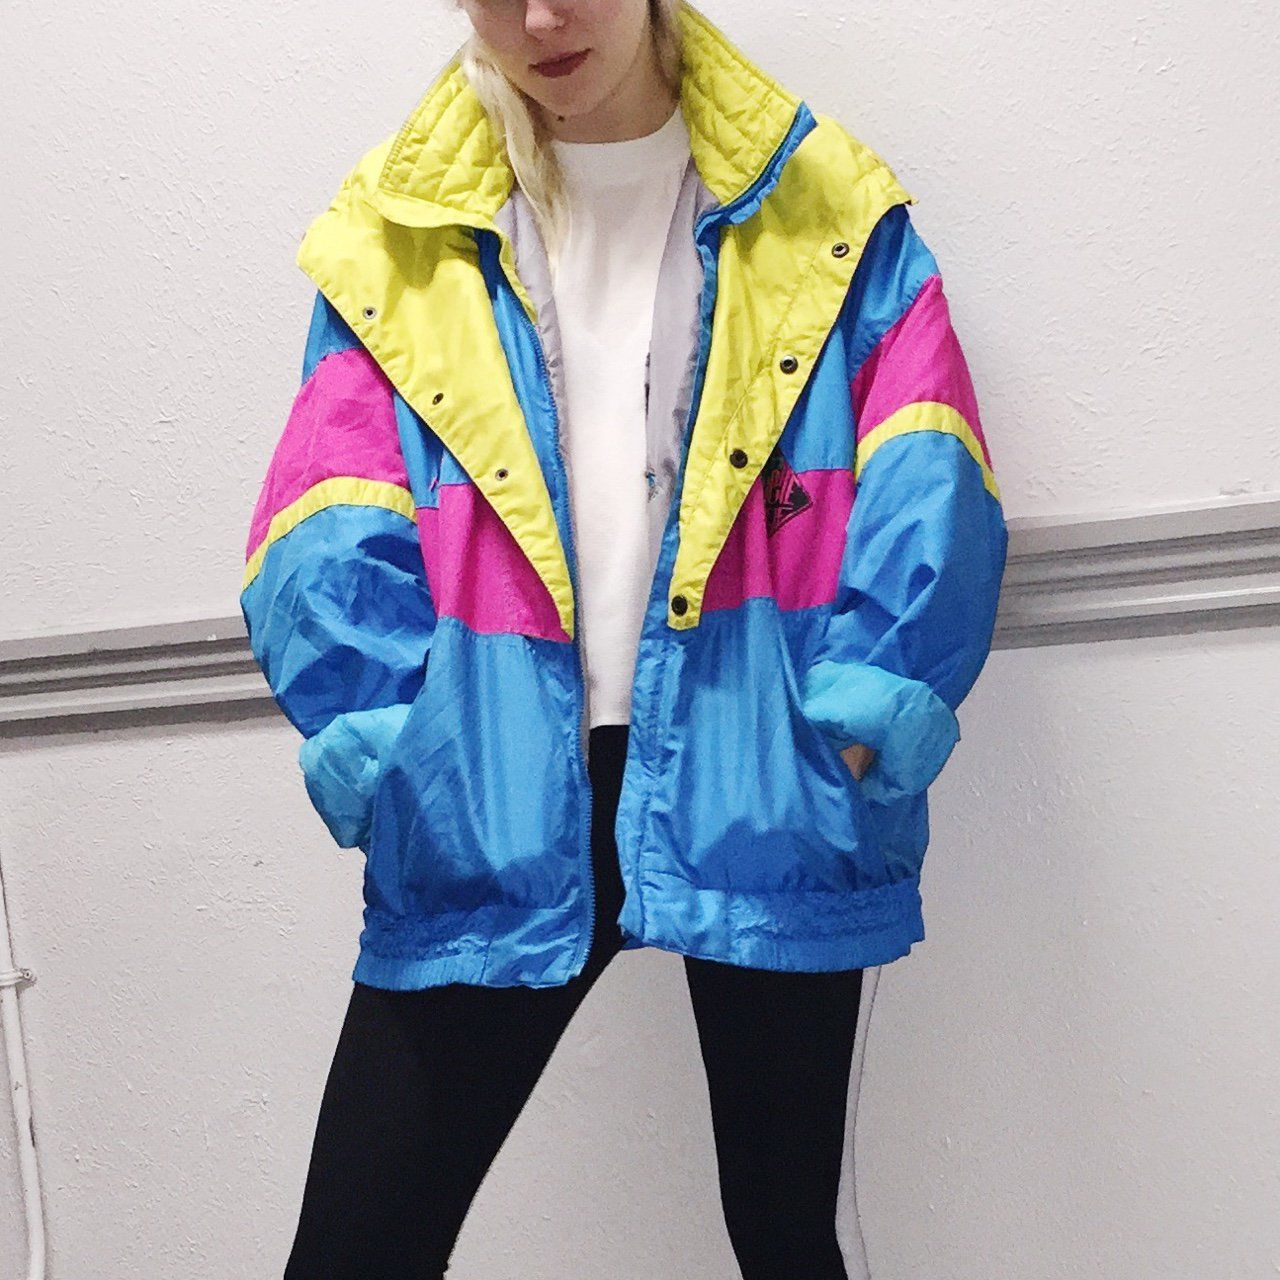 a327d9d7 The color block ski jacket 💛 Classic 80s/90s vibe. The bright colors are  killer. Great condition! Pair with any old baggy jeans and a crop.